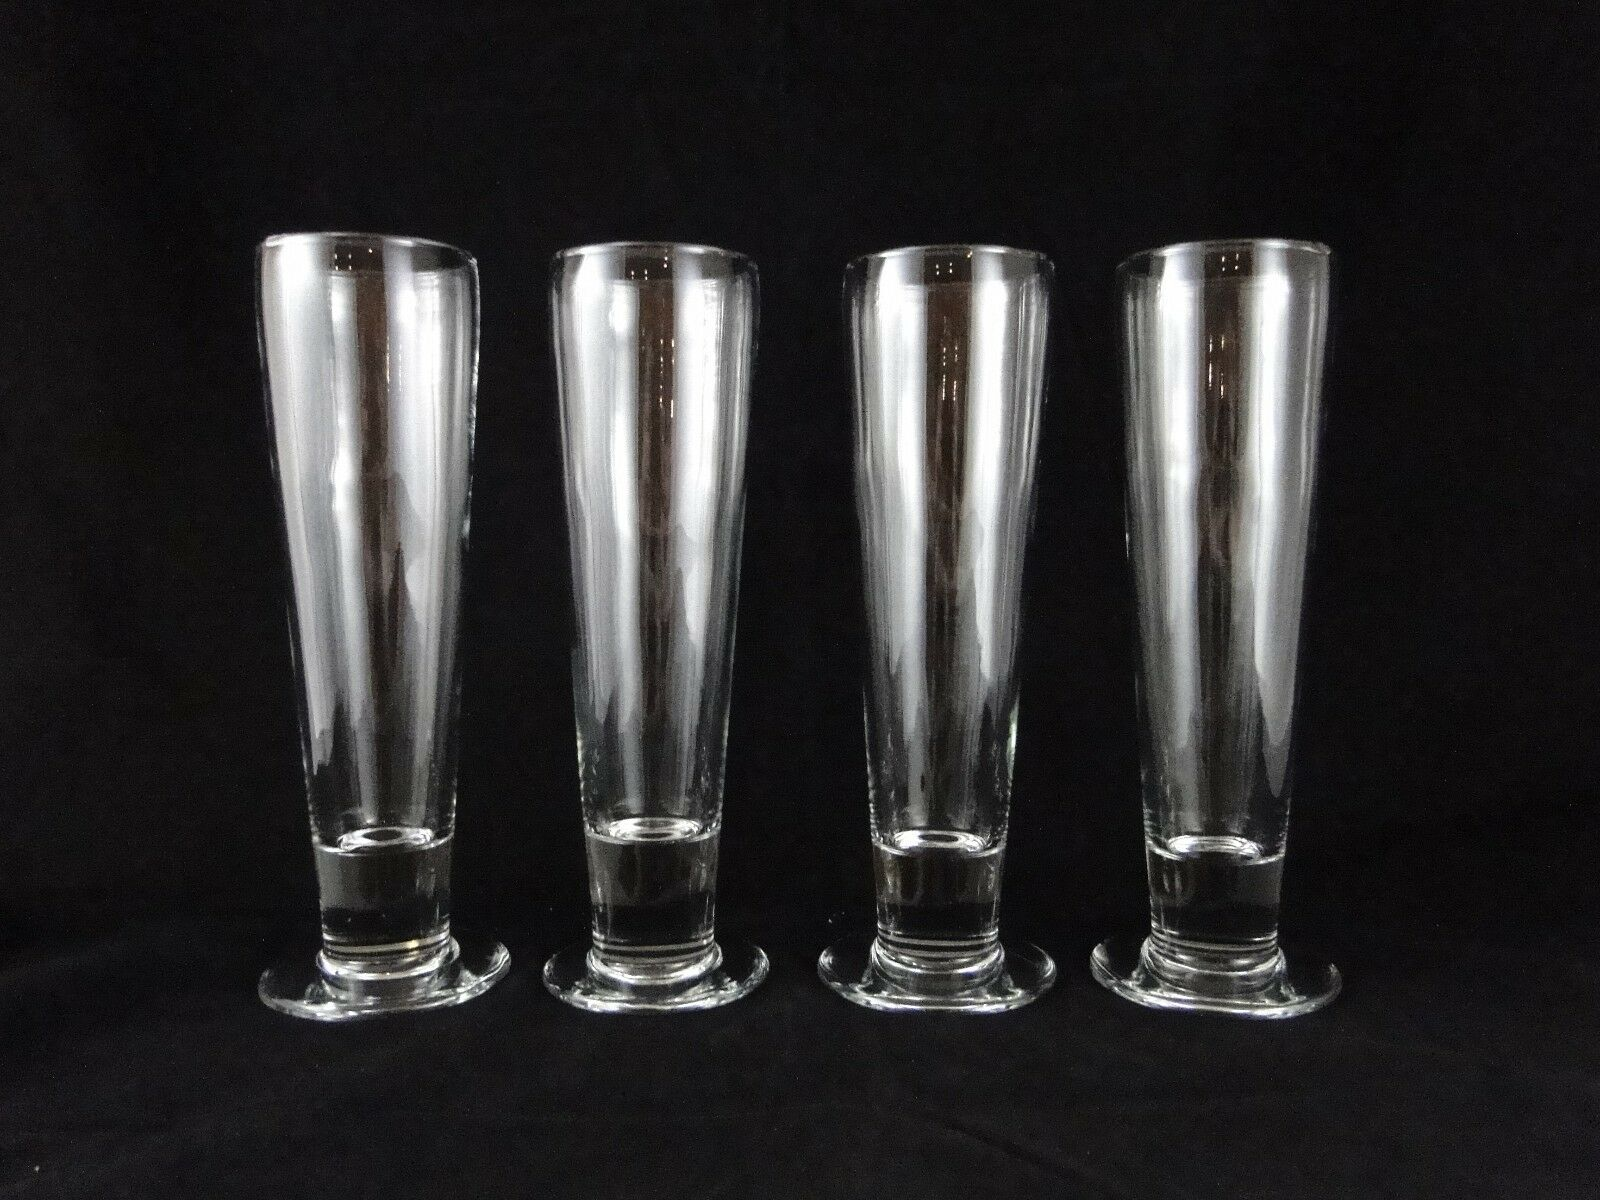 Set of 4 Footed Tall Beer Glasses